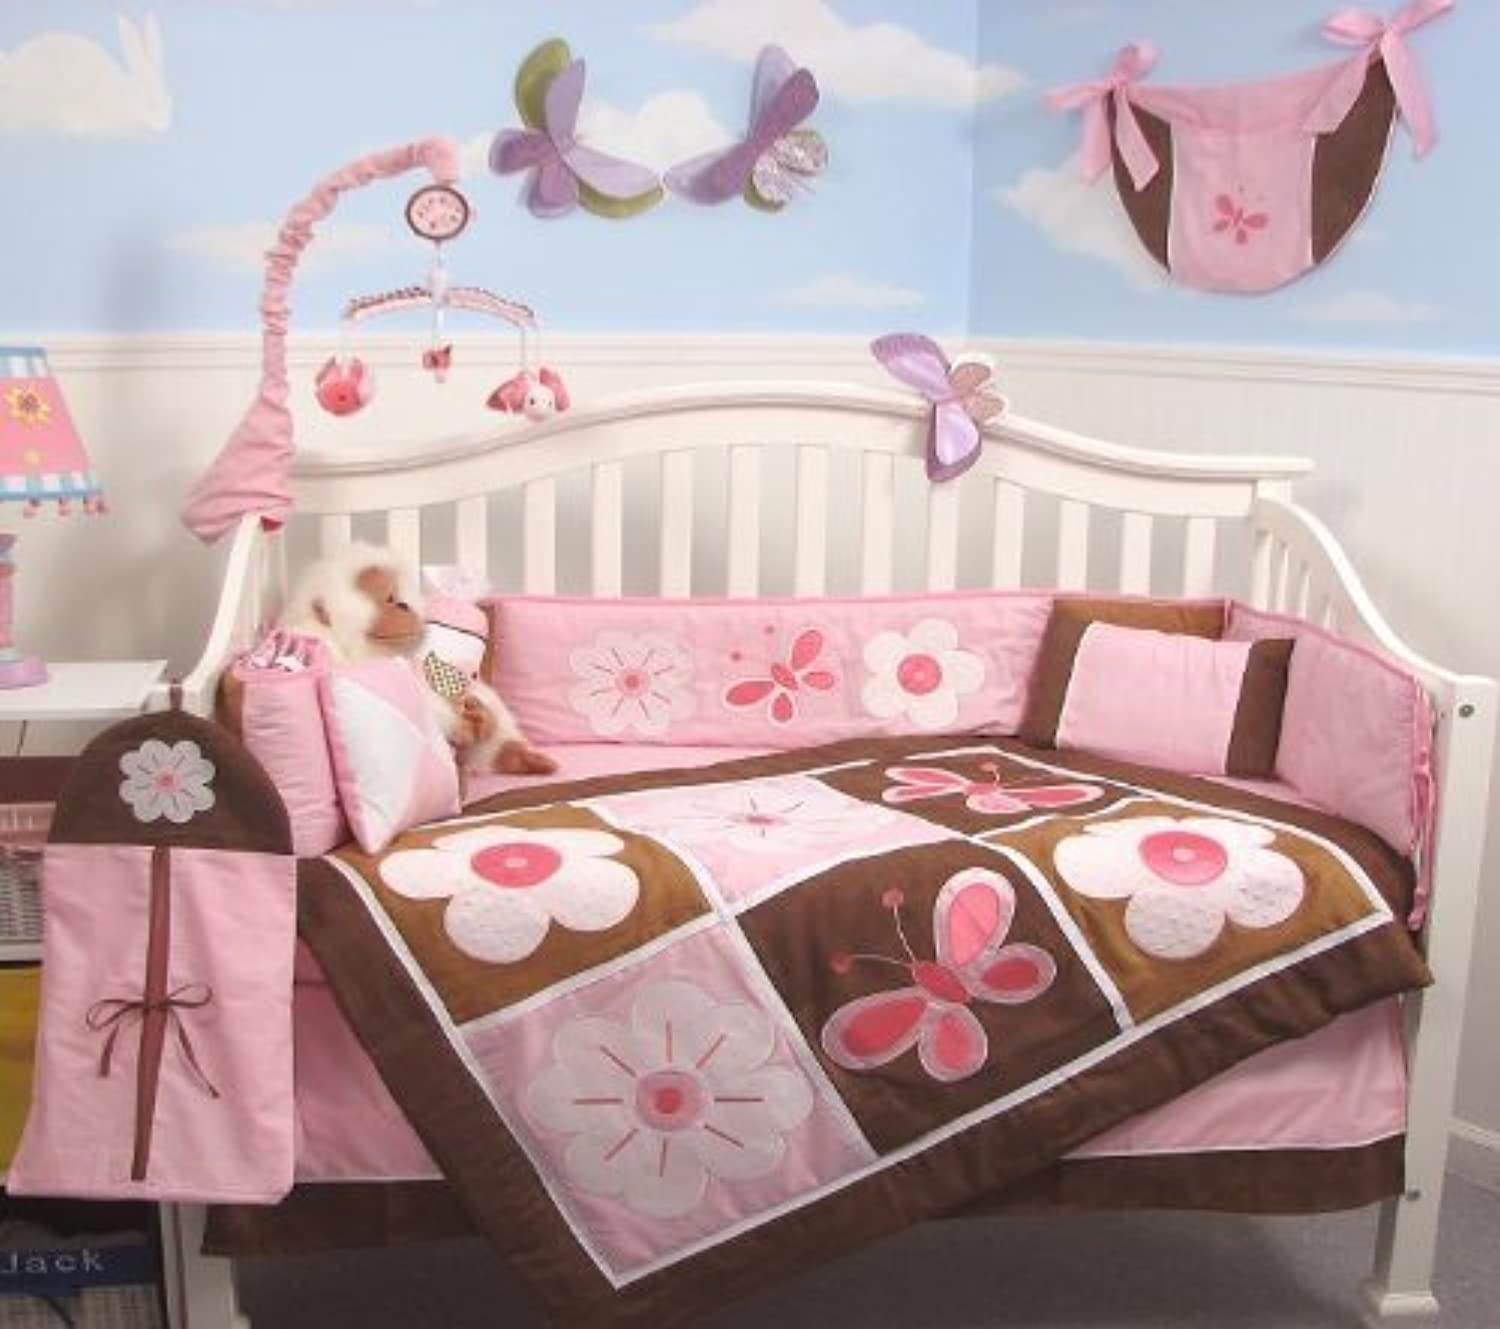 SoHo Pink and Brown Floral Garden Baby Crib Nursery Bedding Set 13 pcs included Diaper Bag with Changing Pad & Bottle Case by SoHo Designs